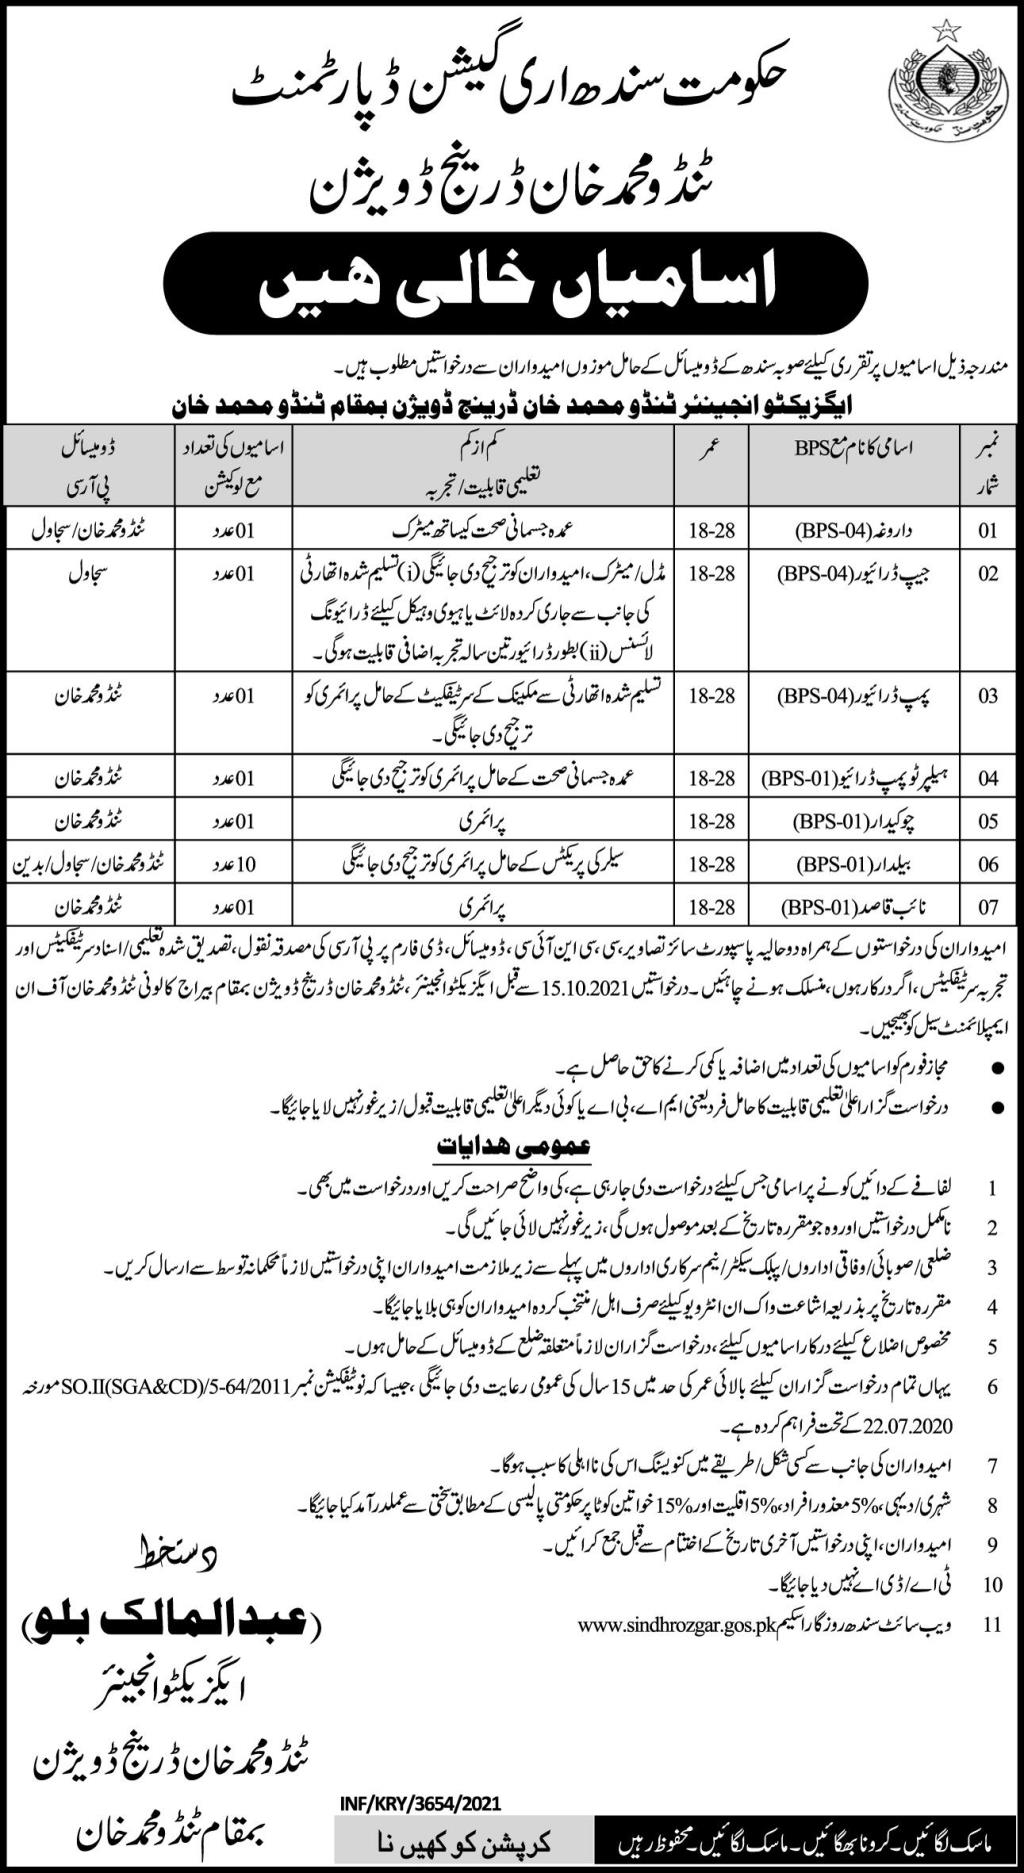 Sindh Government Jobs 2021 At Sindh Irrigation Department